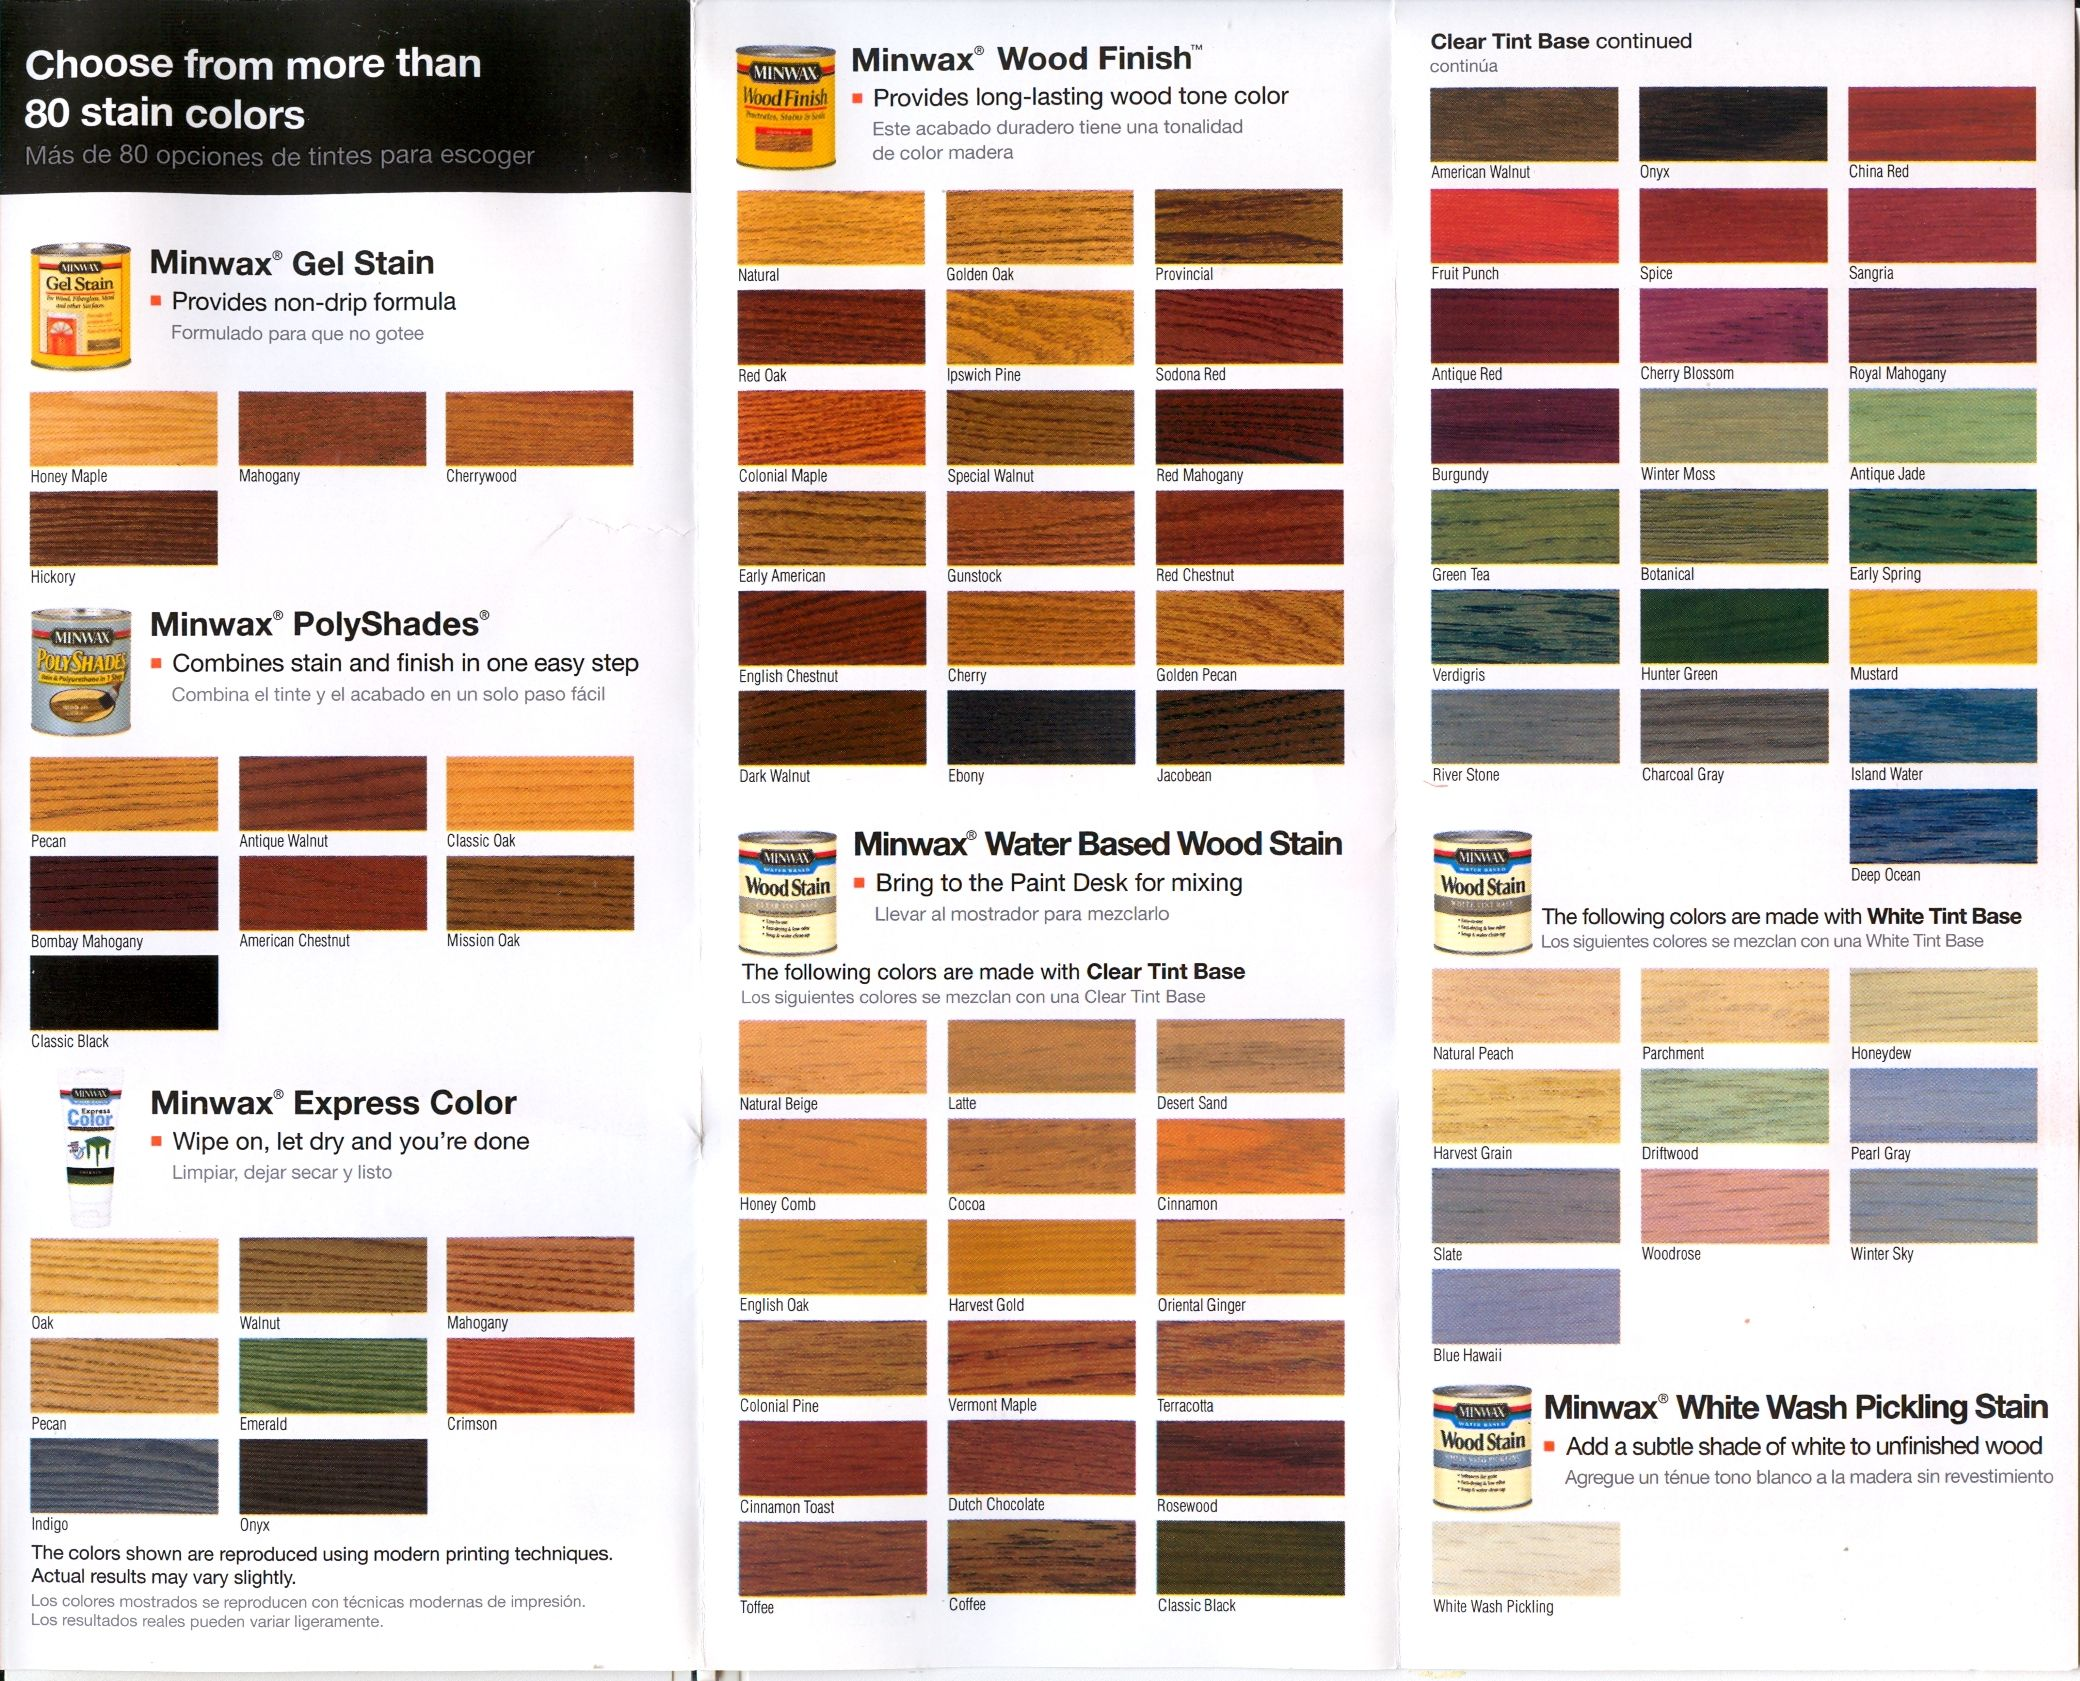 Deck stain colors at home depot for the home pinterest wood deck stain colors at home depot nvjuhfo Image collections